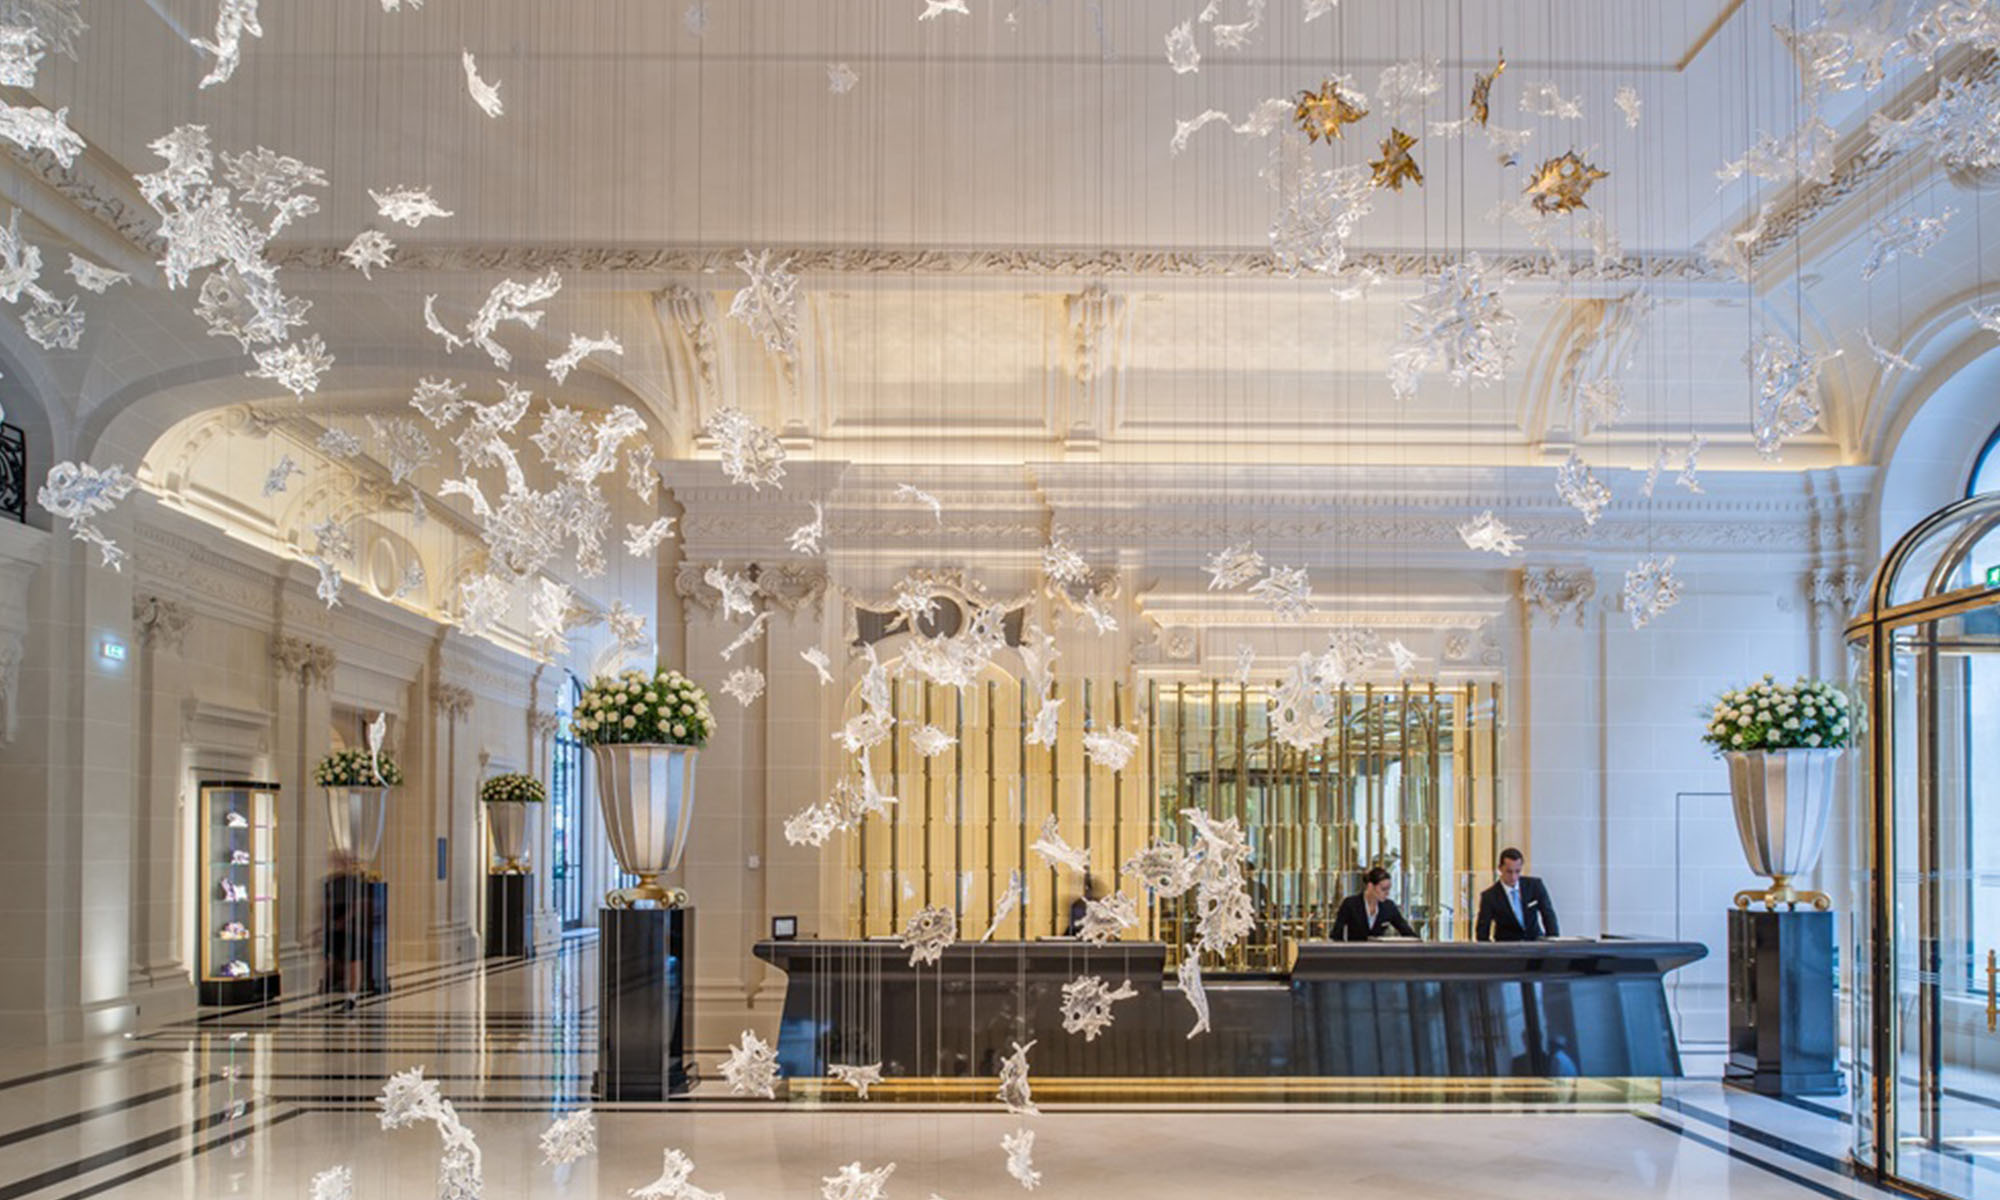 The Peninsula Hotels optimises guest experience initiatives